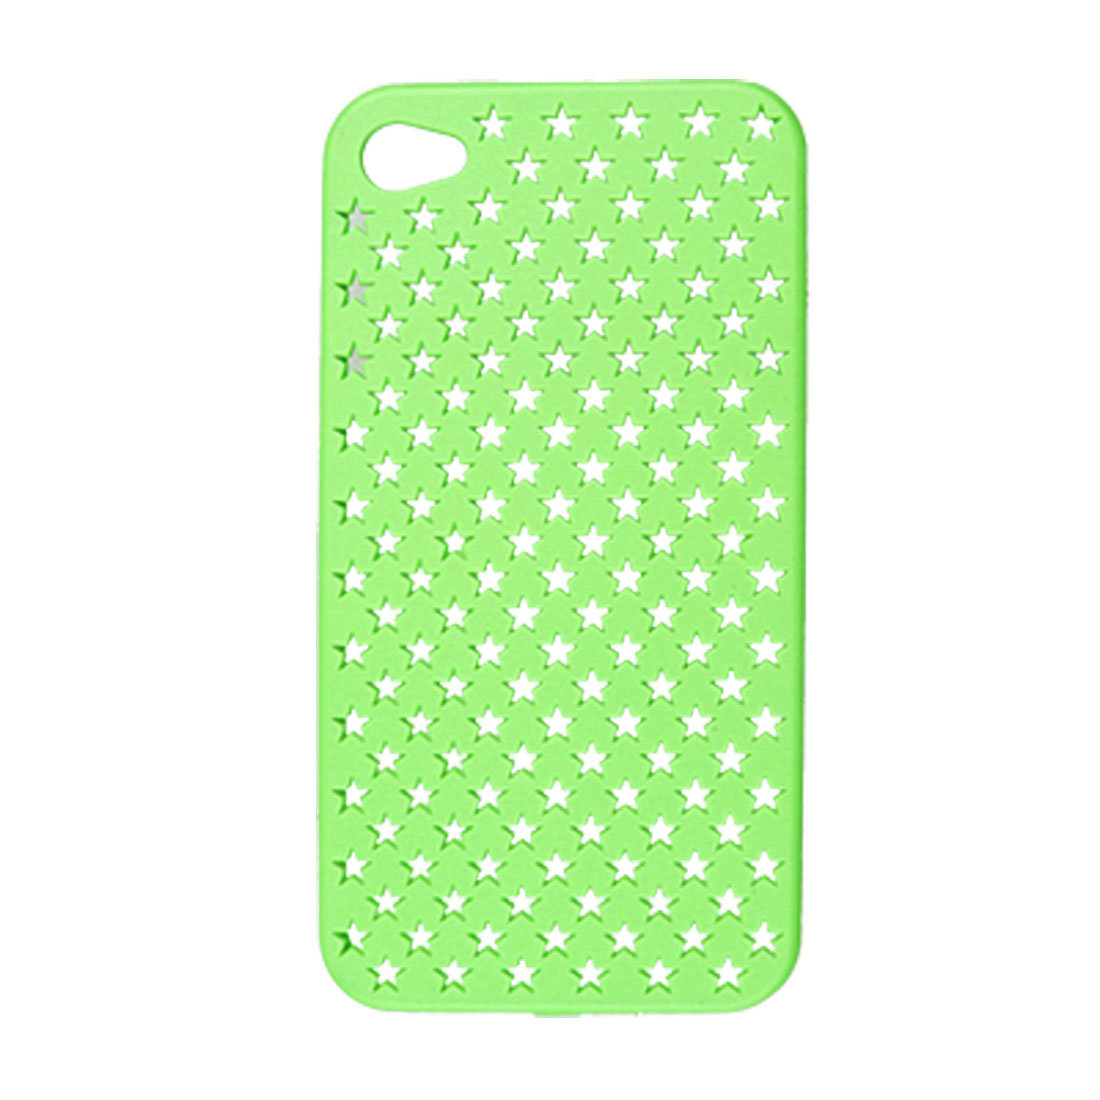 Rubberized Hard Plastic Green Mesh Hole Back Case for iPhone 4 4G